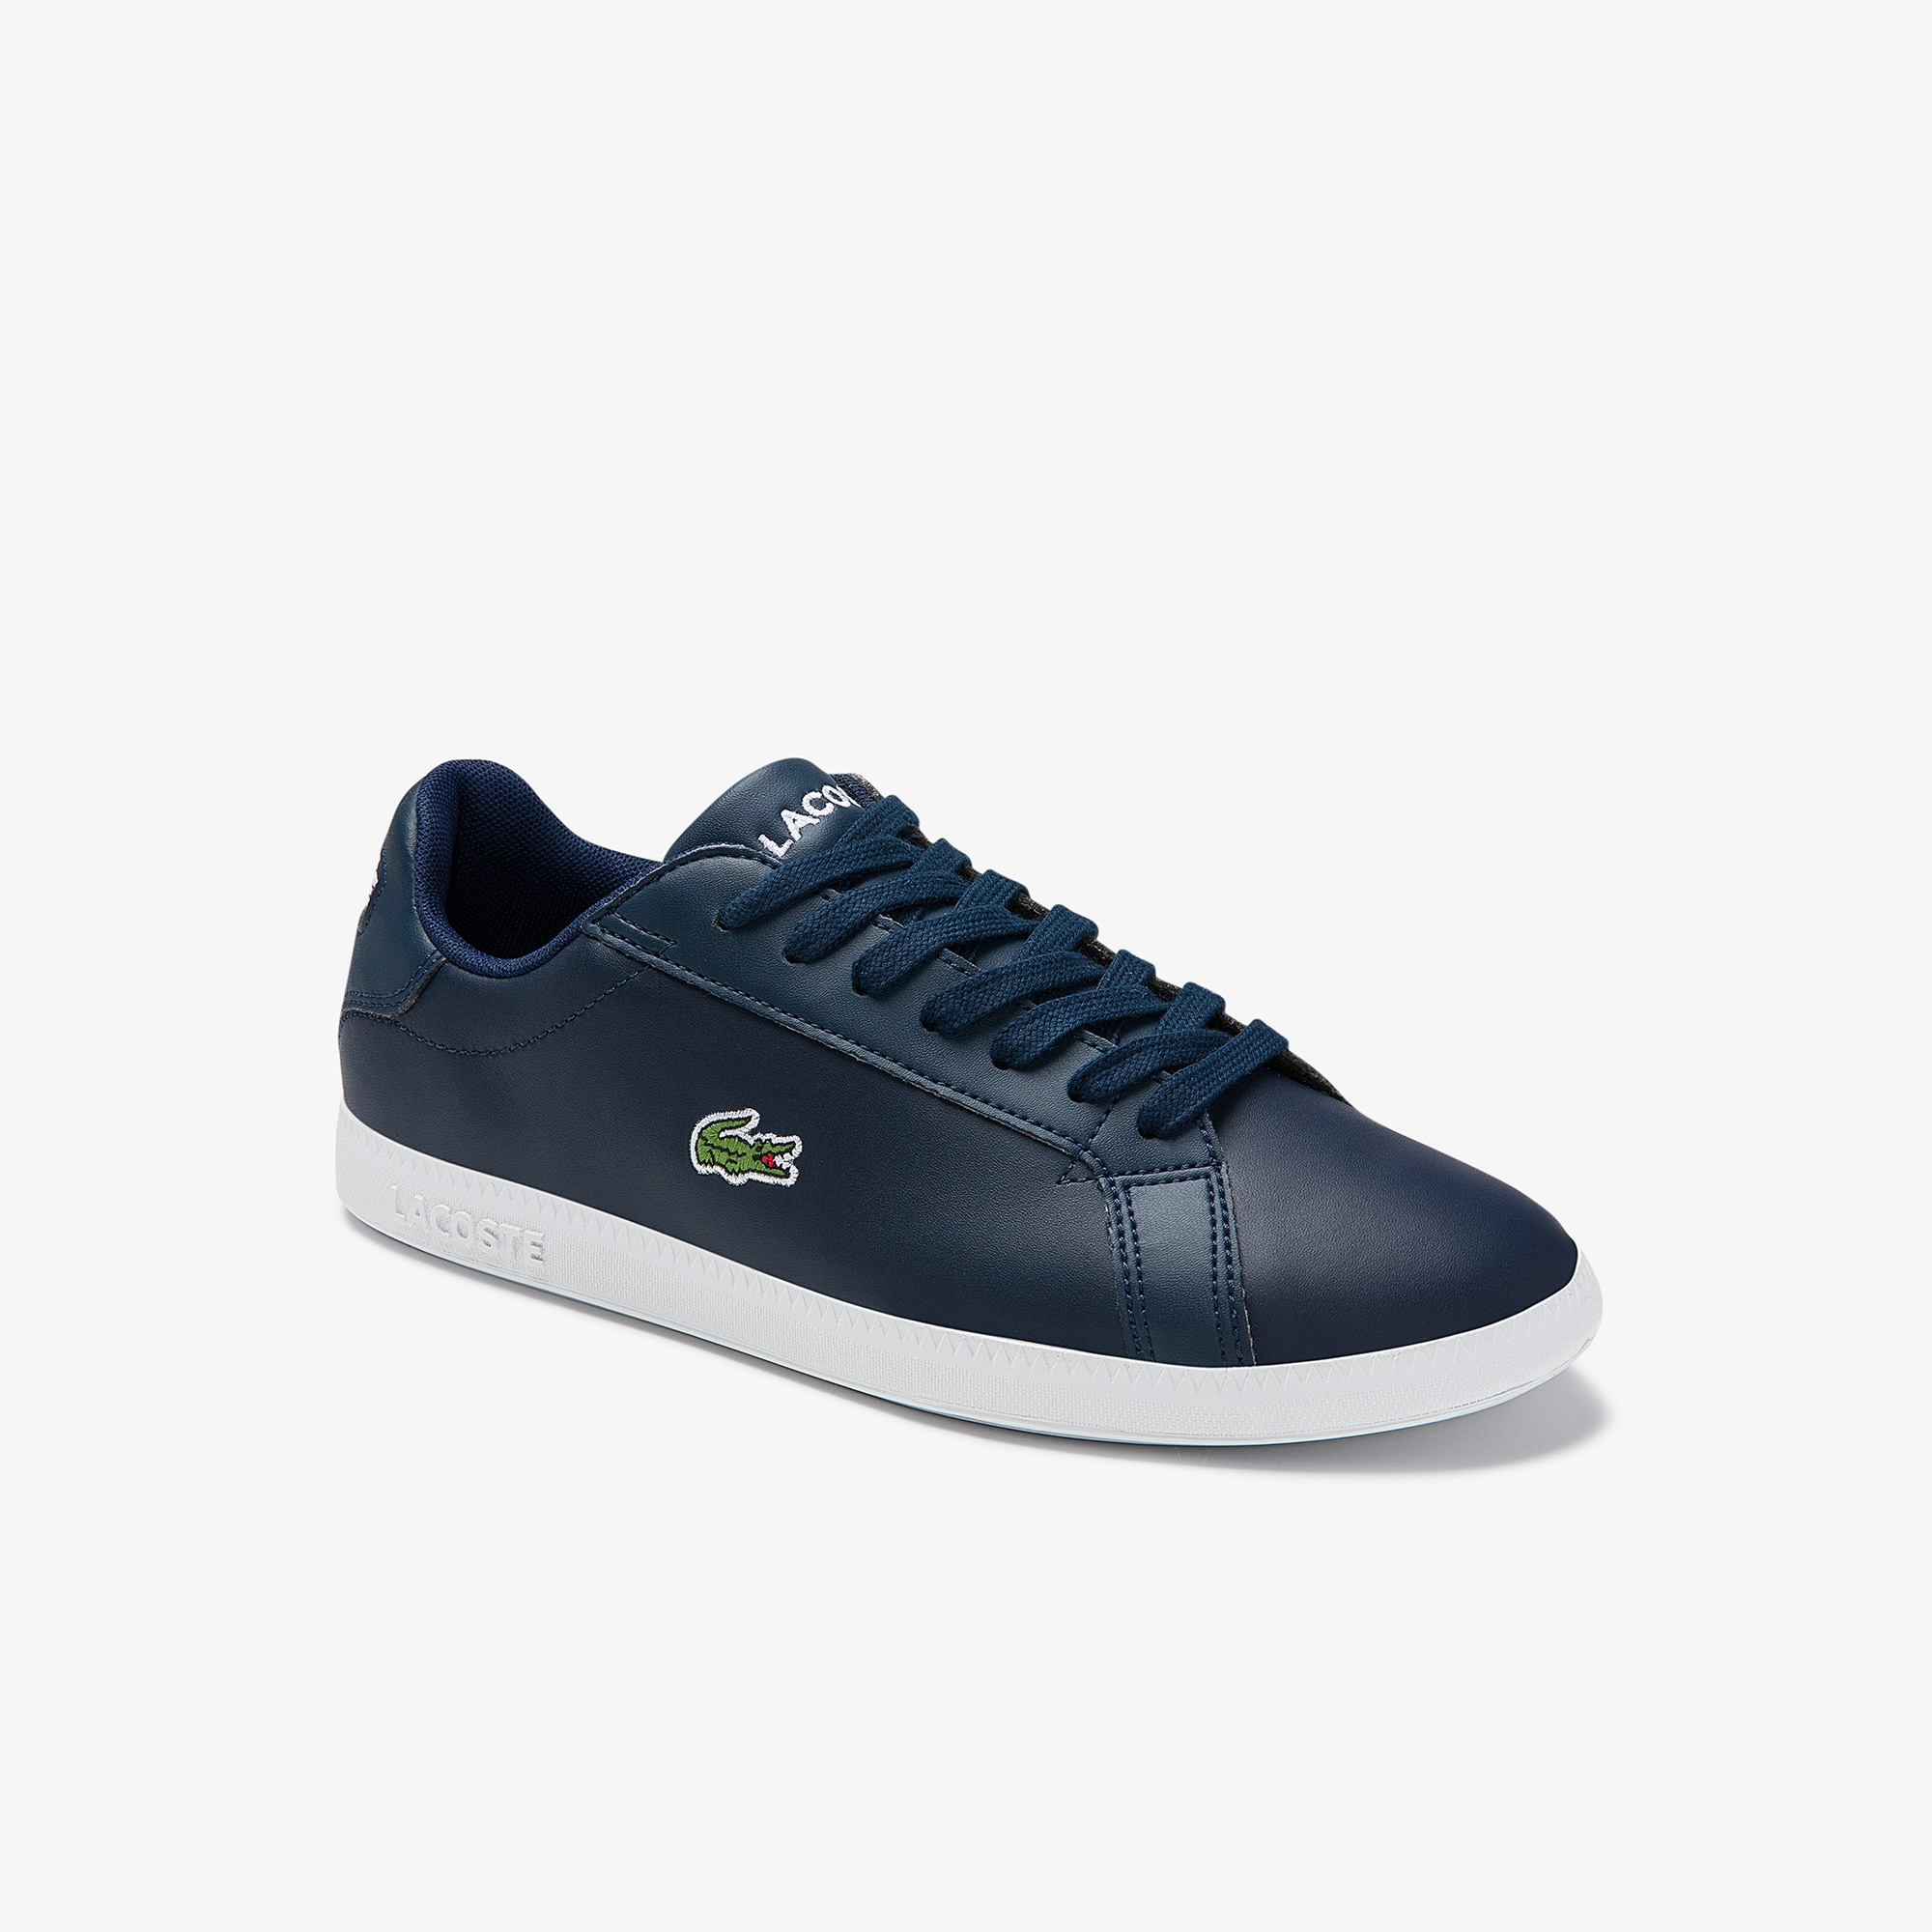 Lacoste Sneakers Men's Graduate Leather and Synthetic Sneakers